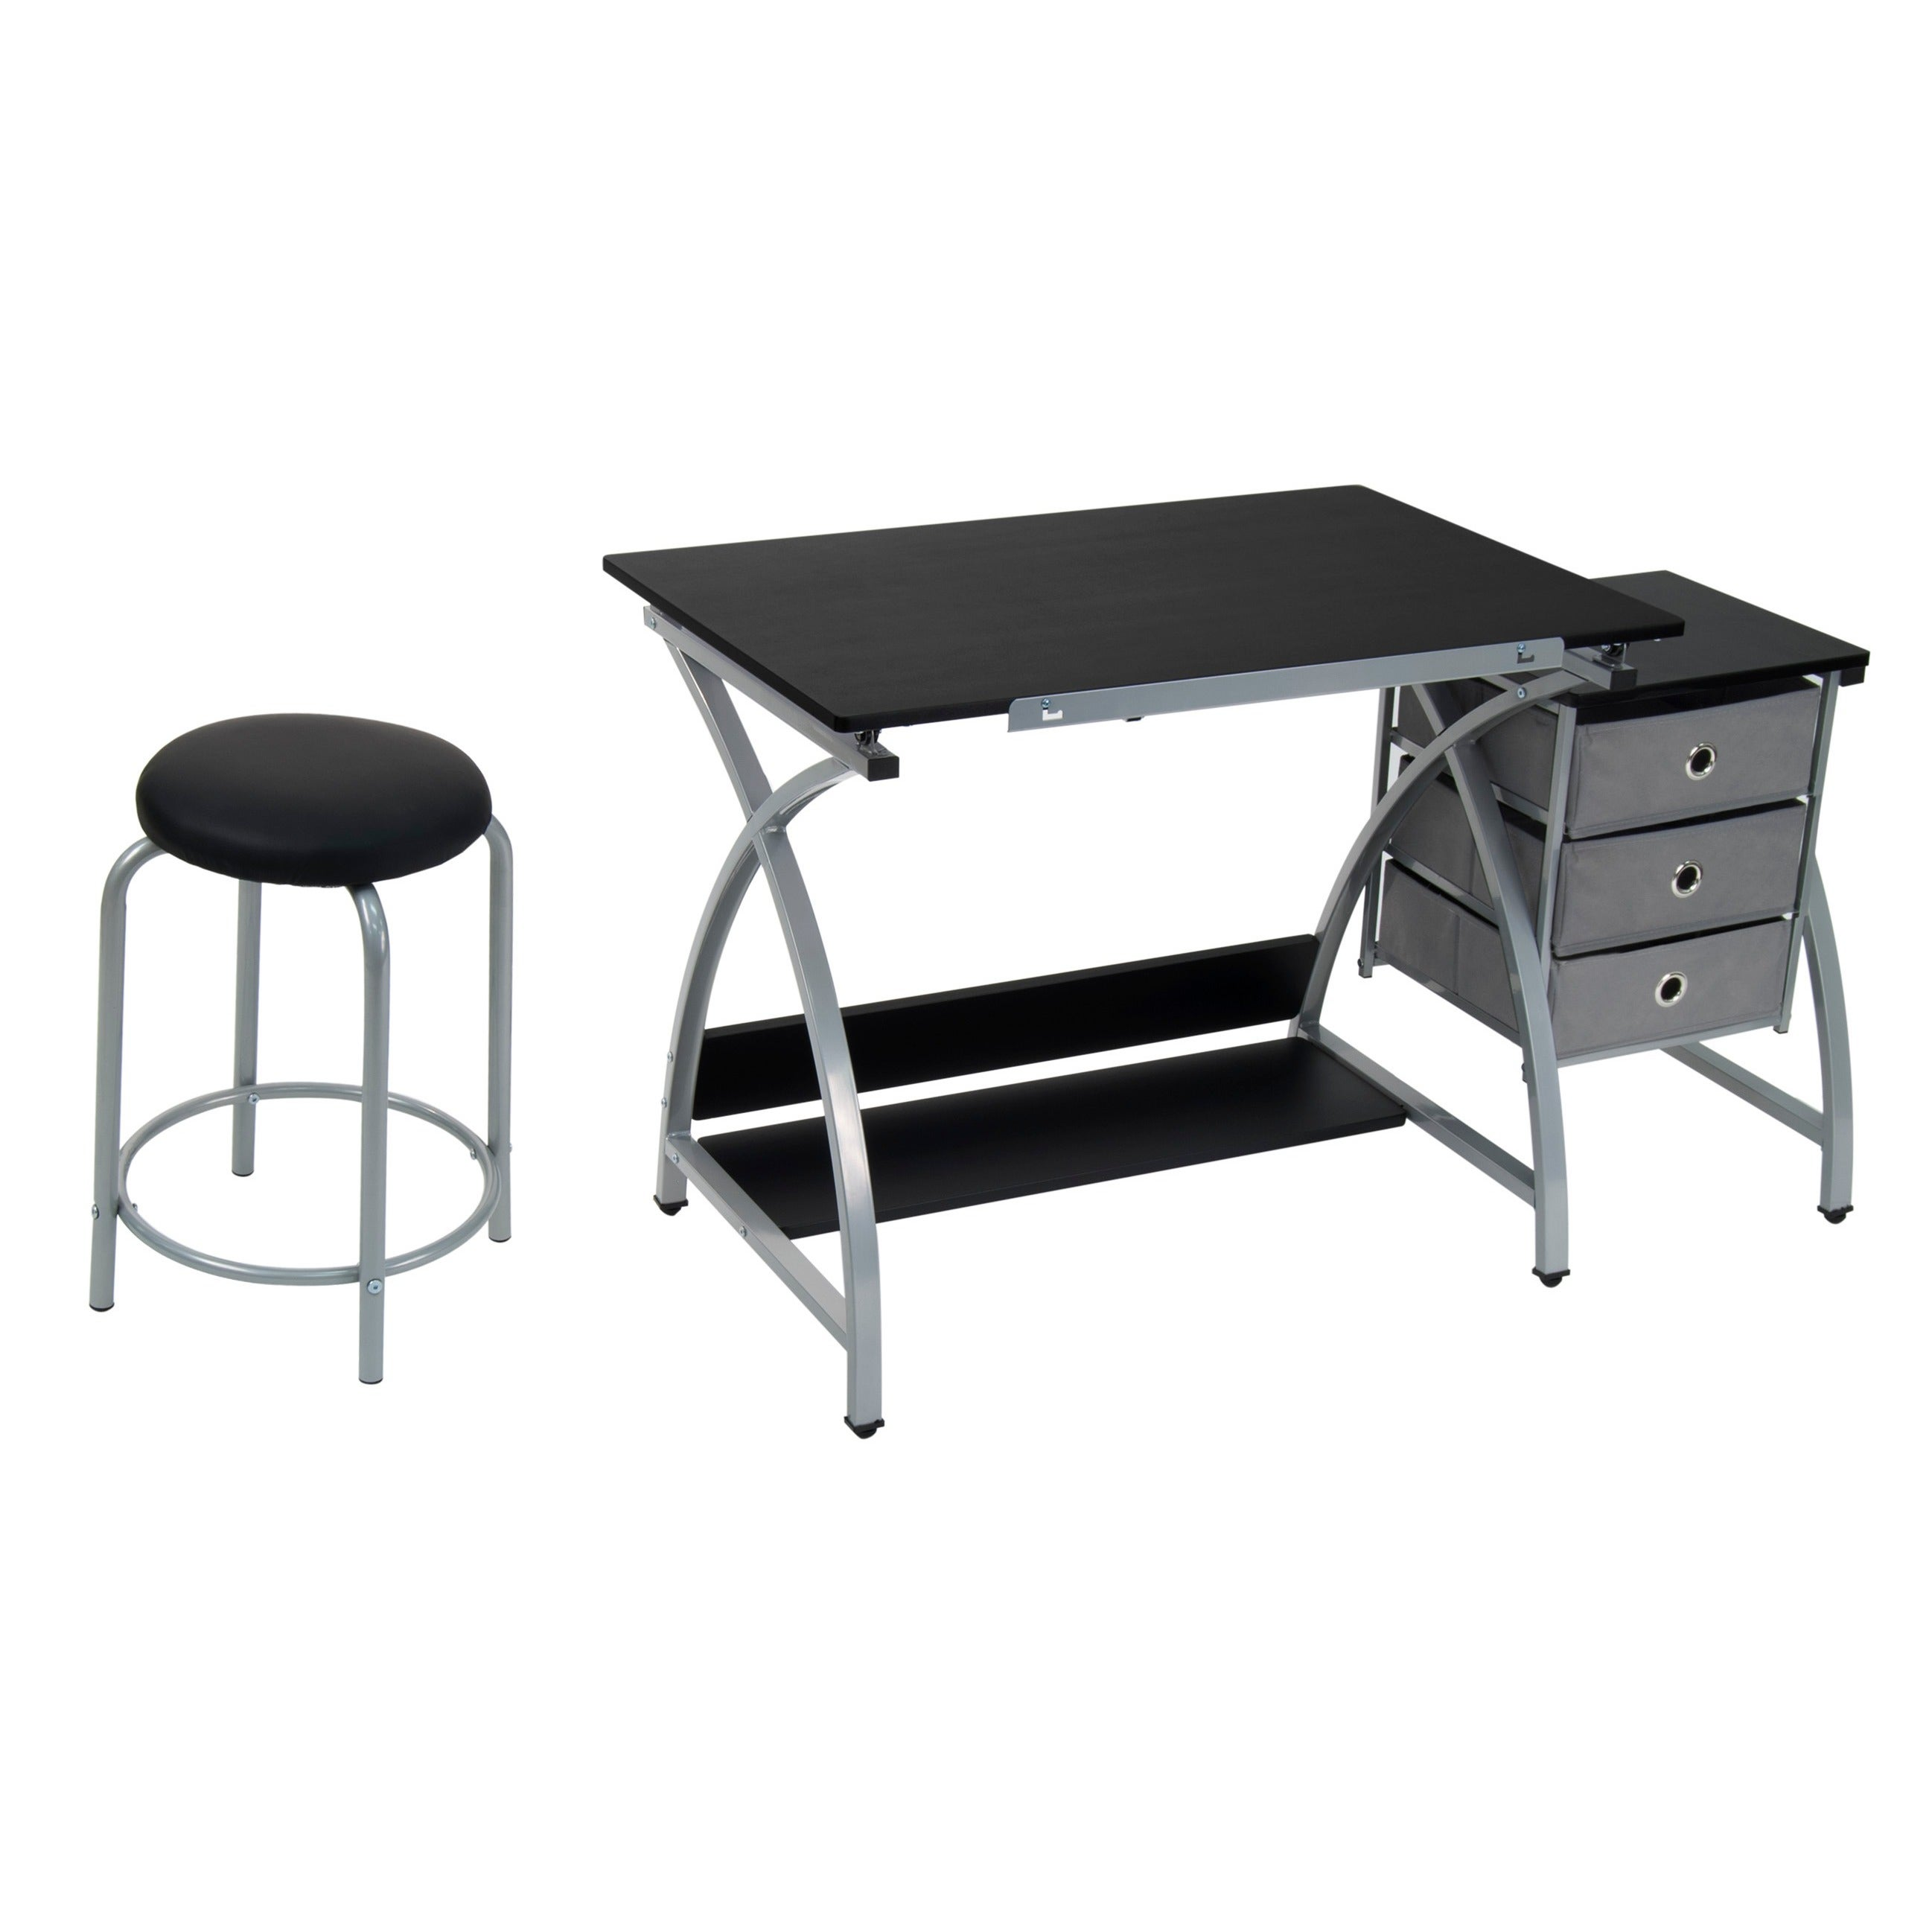 Studio Designs Comet Silver/Black Drafting Hobby Craft Table With Stool    Free Shipping Today   Overstock   15657733